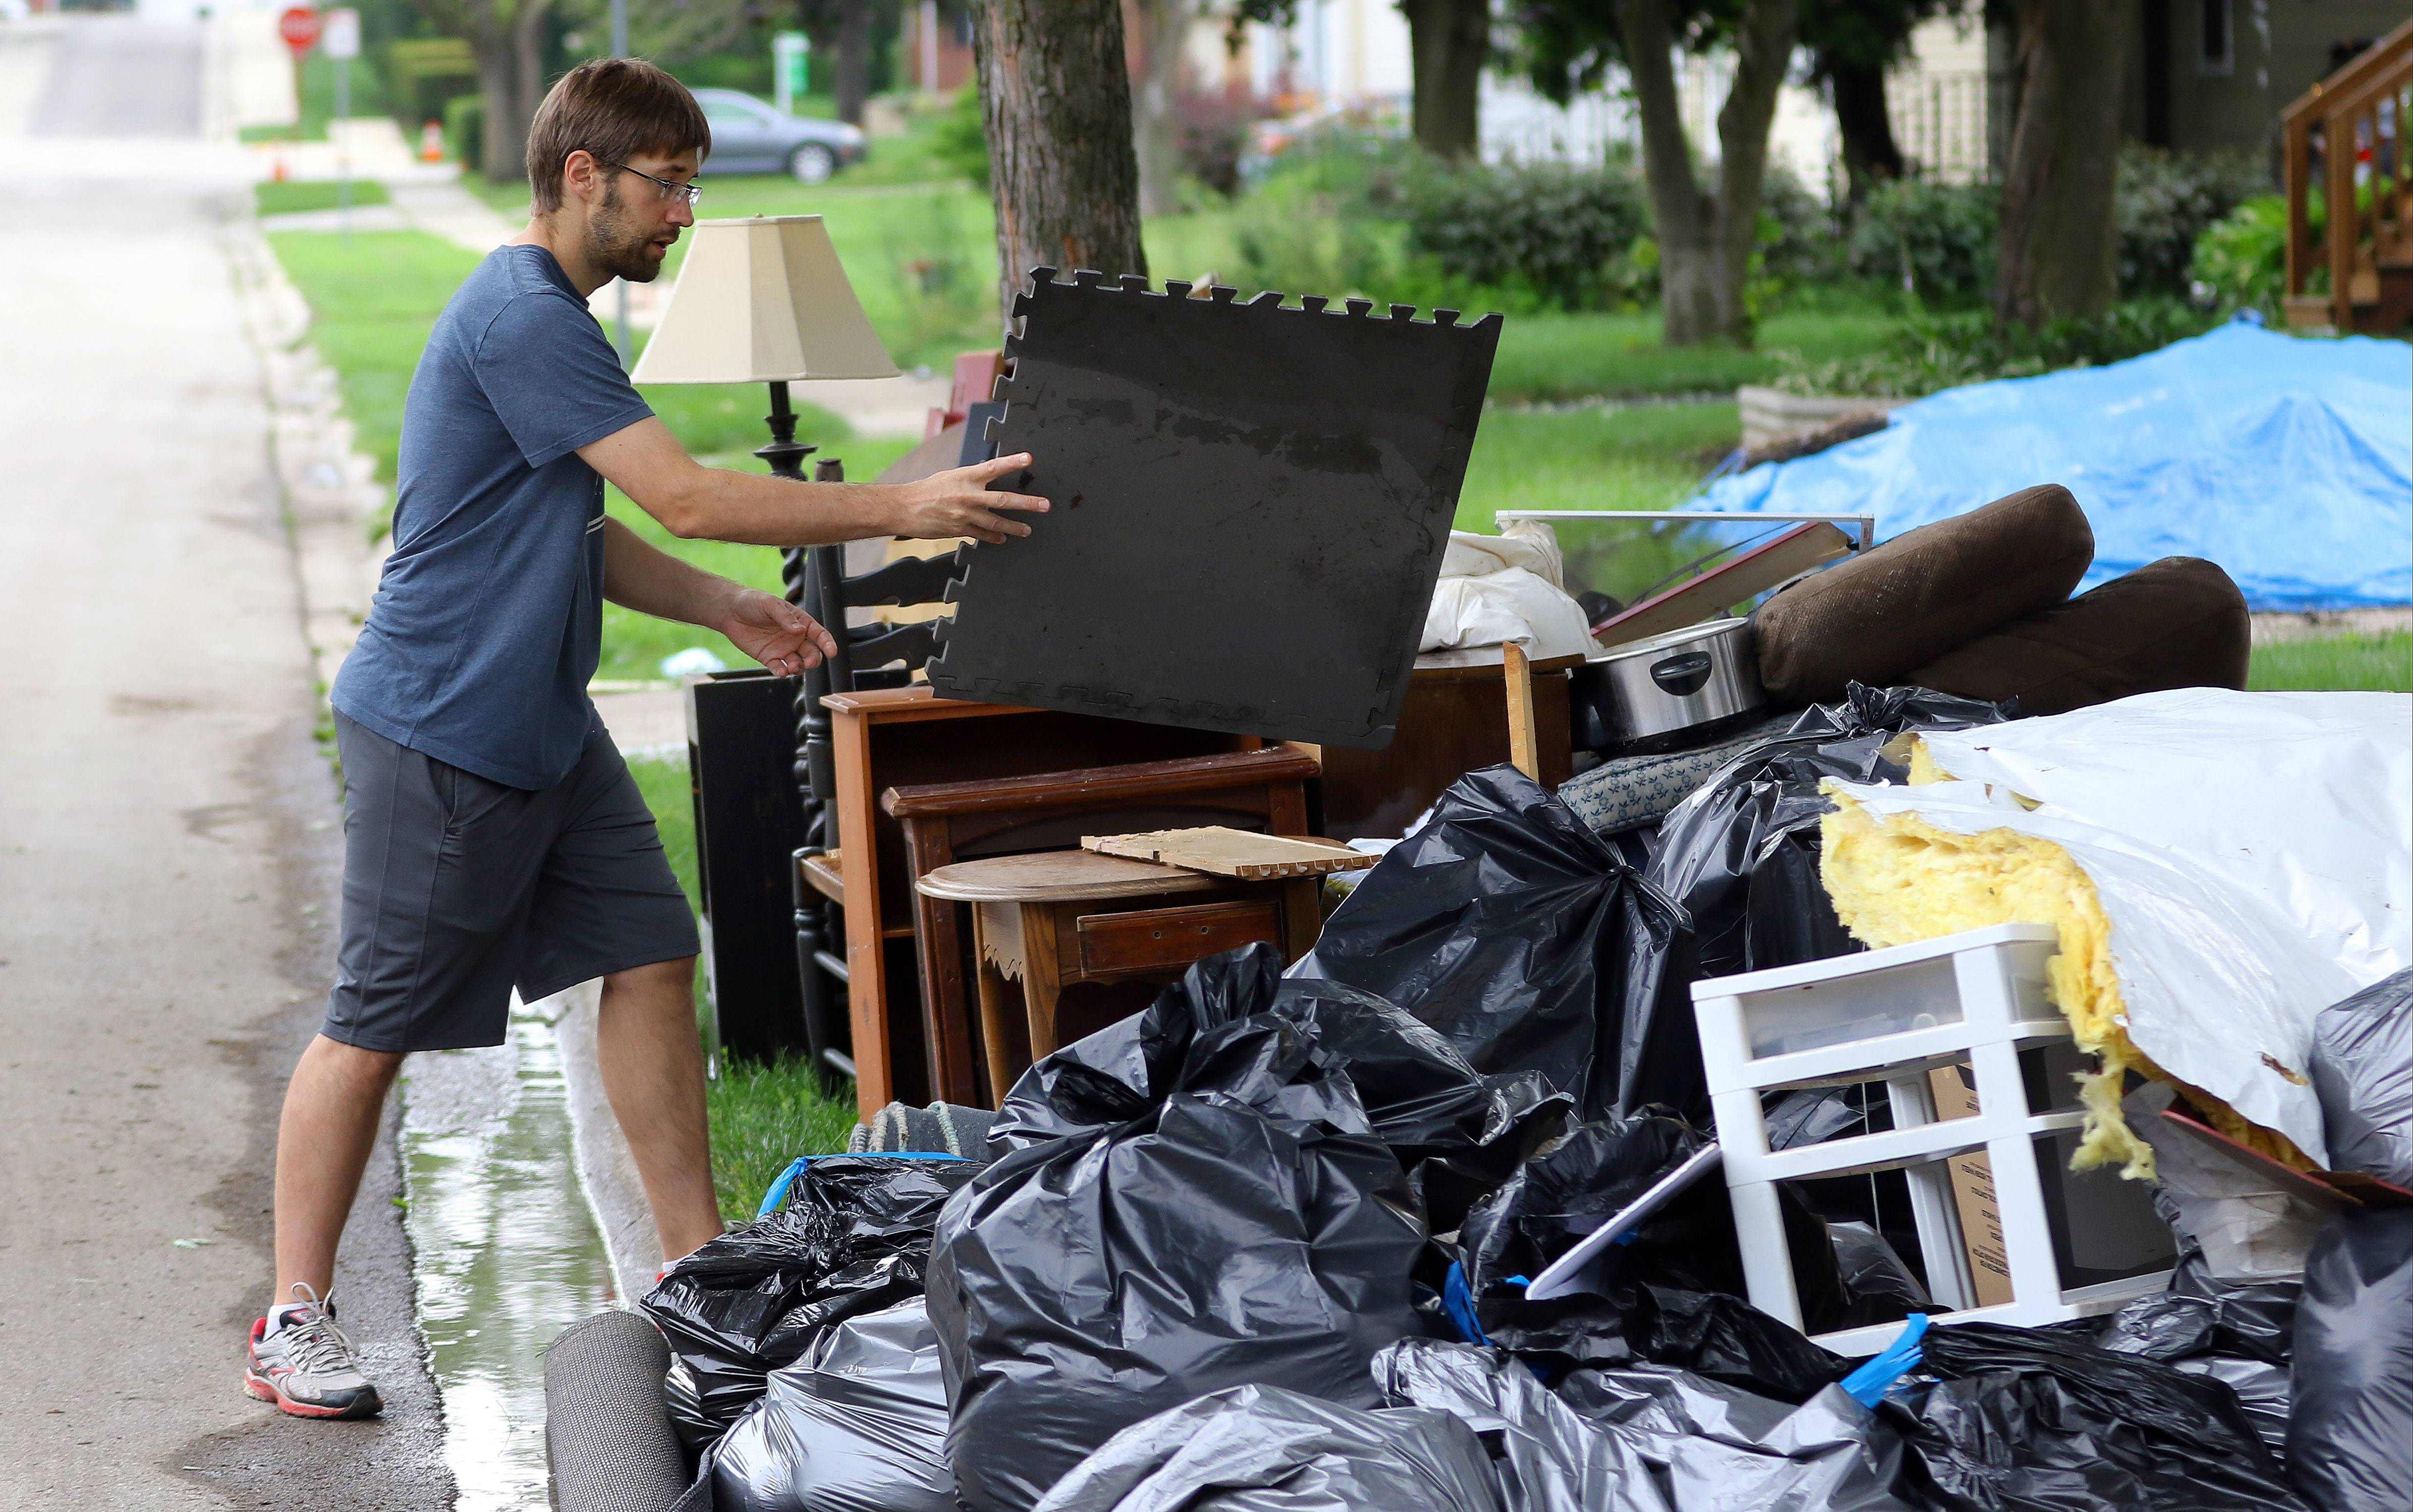 Chris Walter of Mundelein throws out flooded items from his basement as people clean up from Wednesday's flooding.